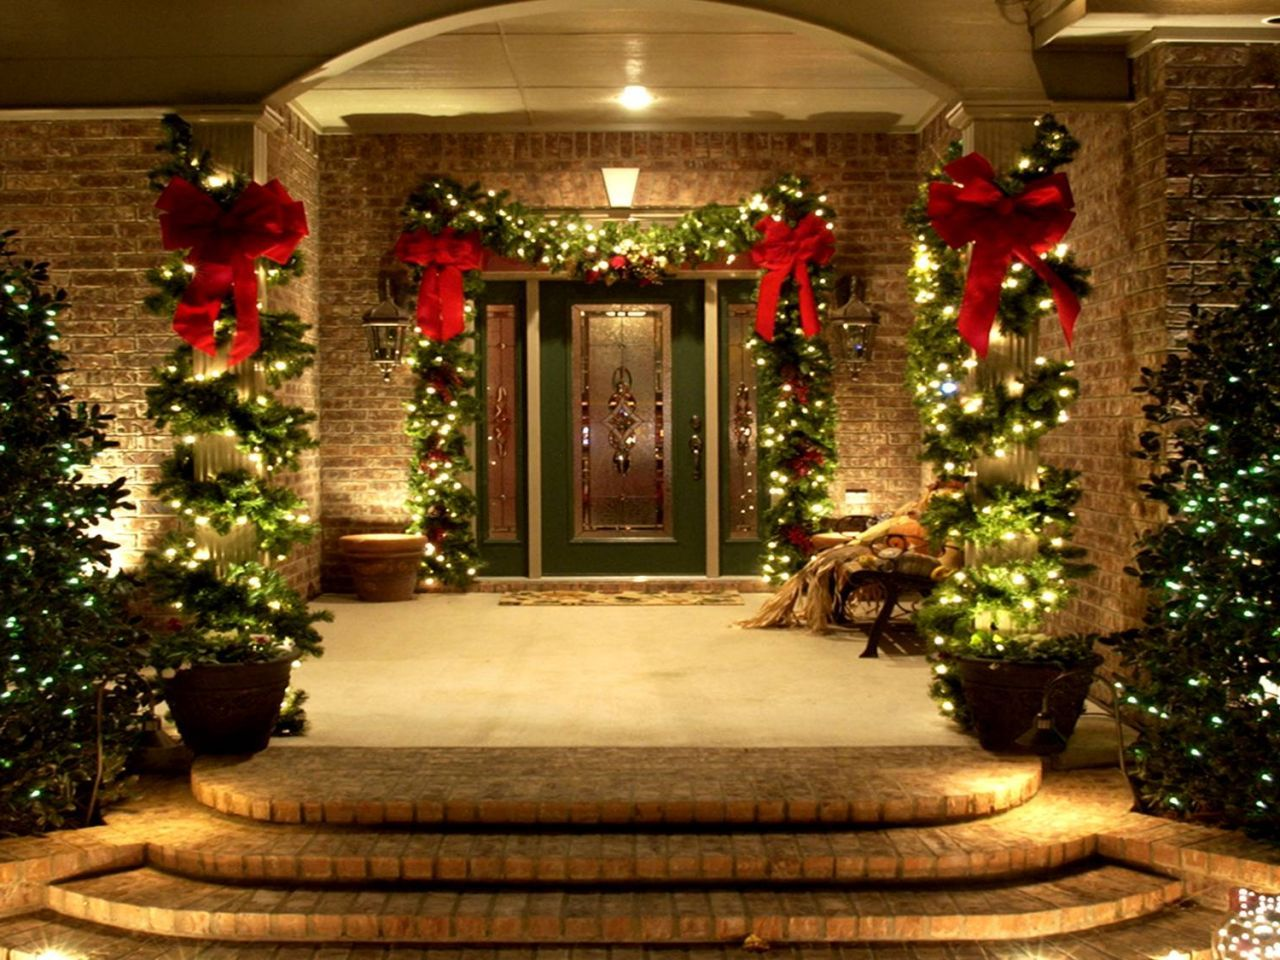 20 Outdoor Christmas Decorations Ideas for Christmas Night